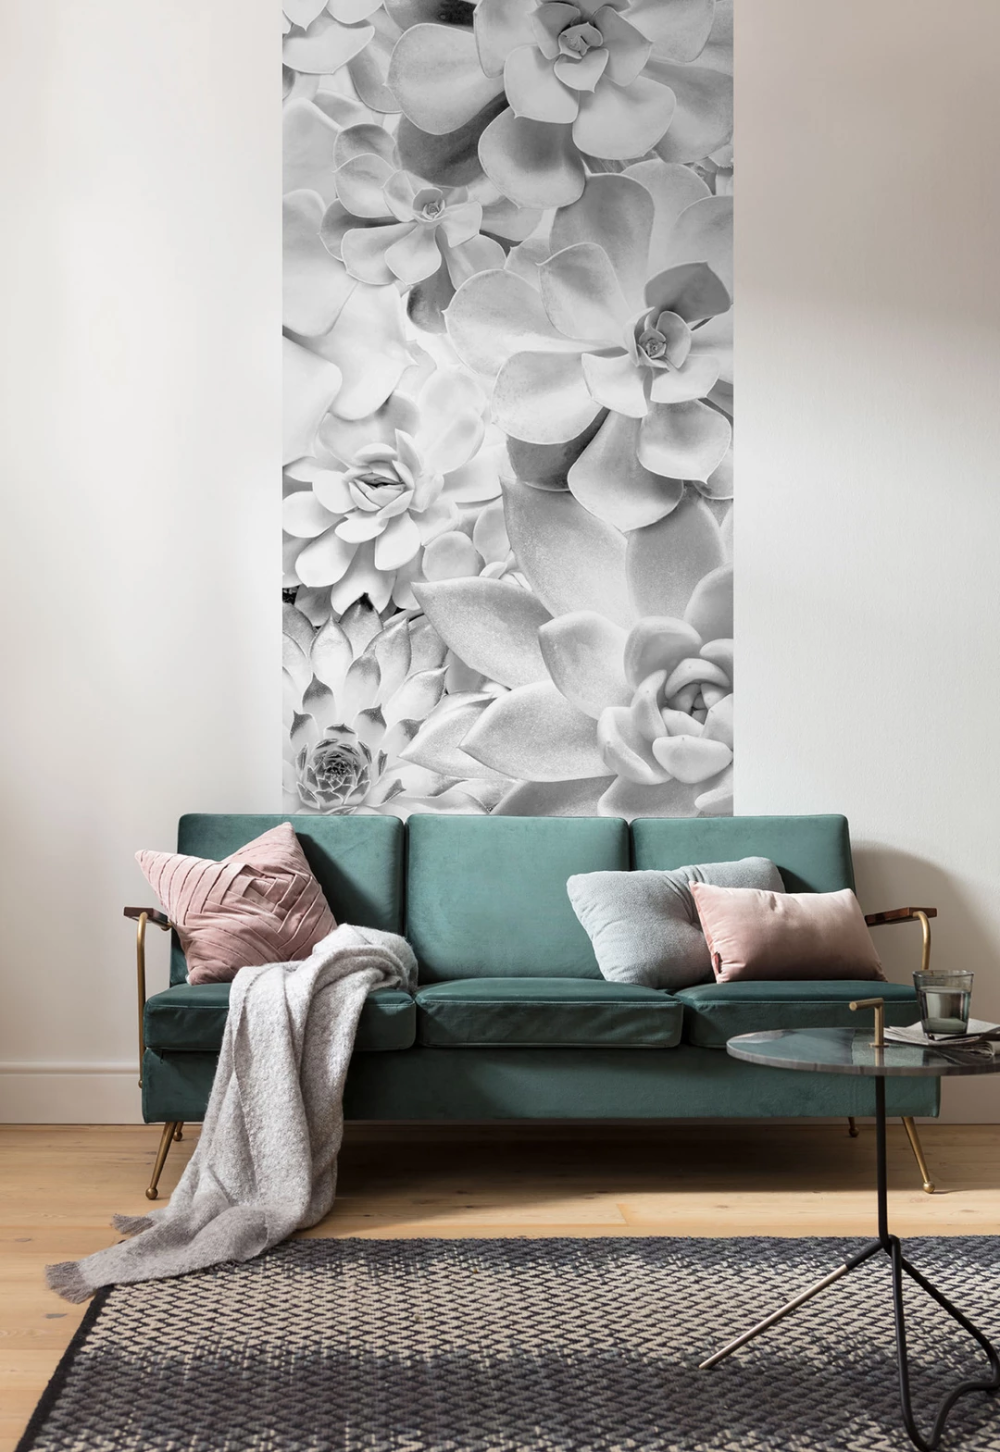 White Succulents Mural Wallpaper White paneling, Mural